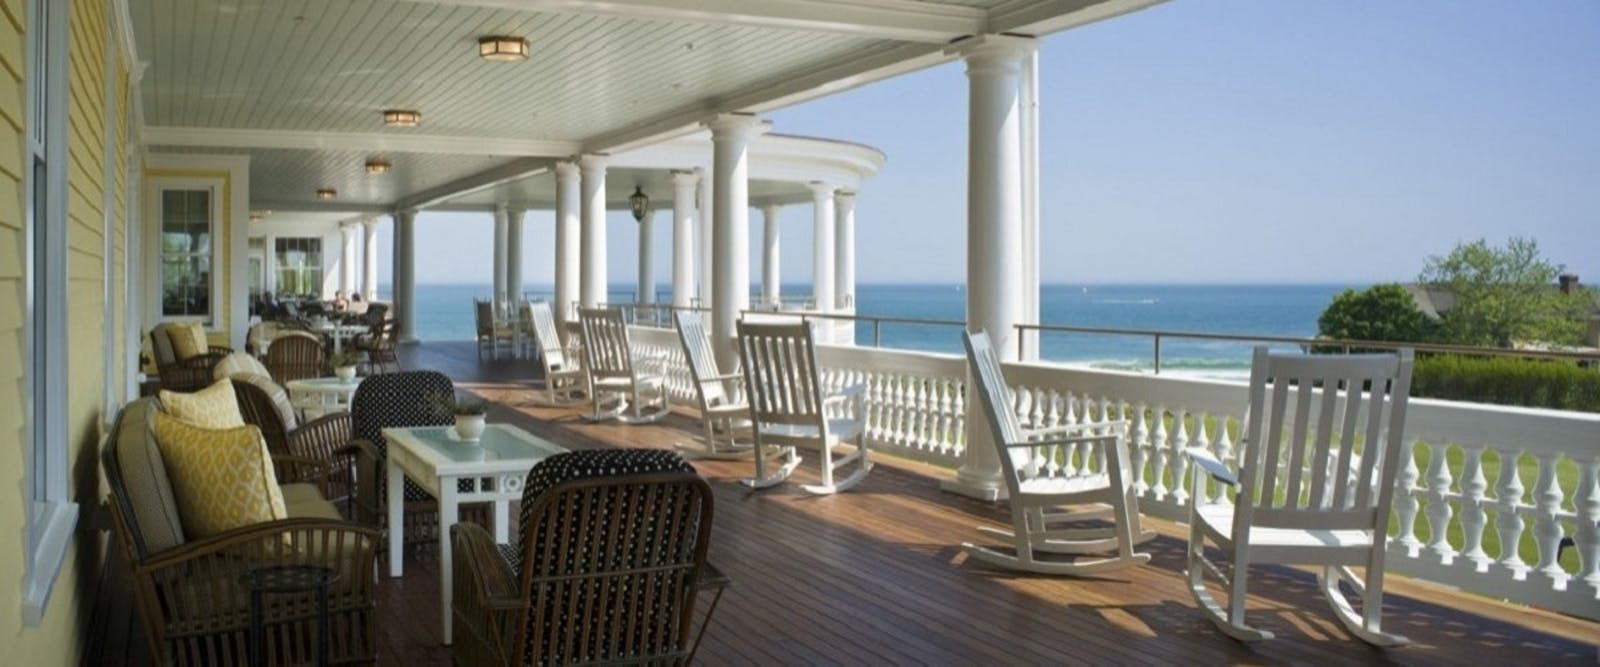 The Verandah at Ocean House Rhode Island, New England